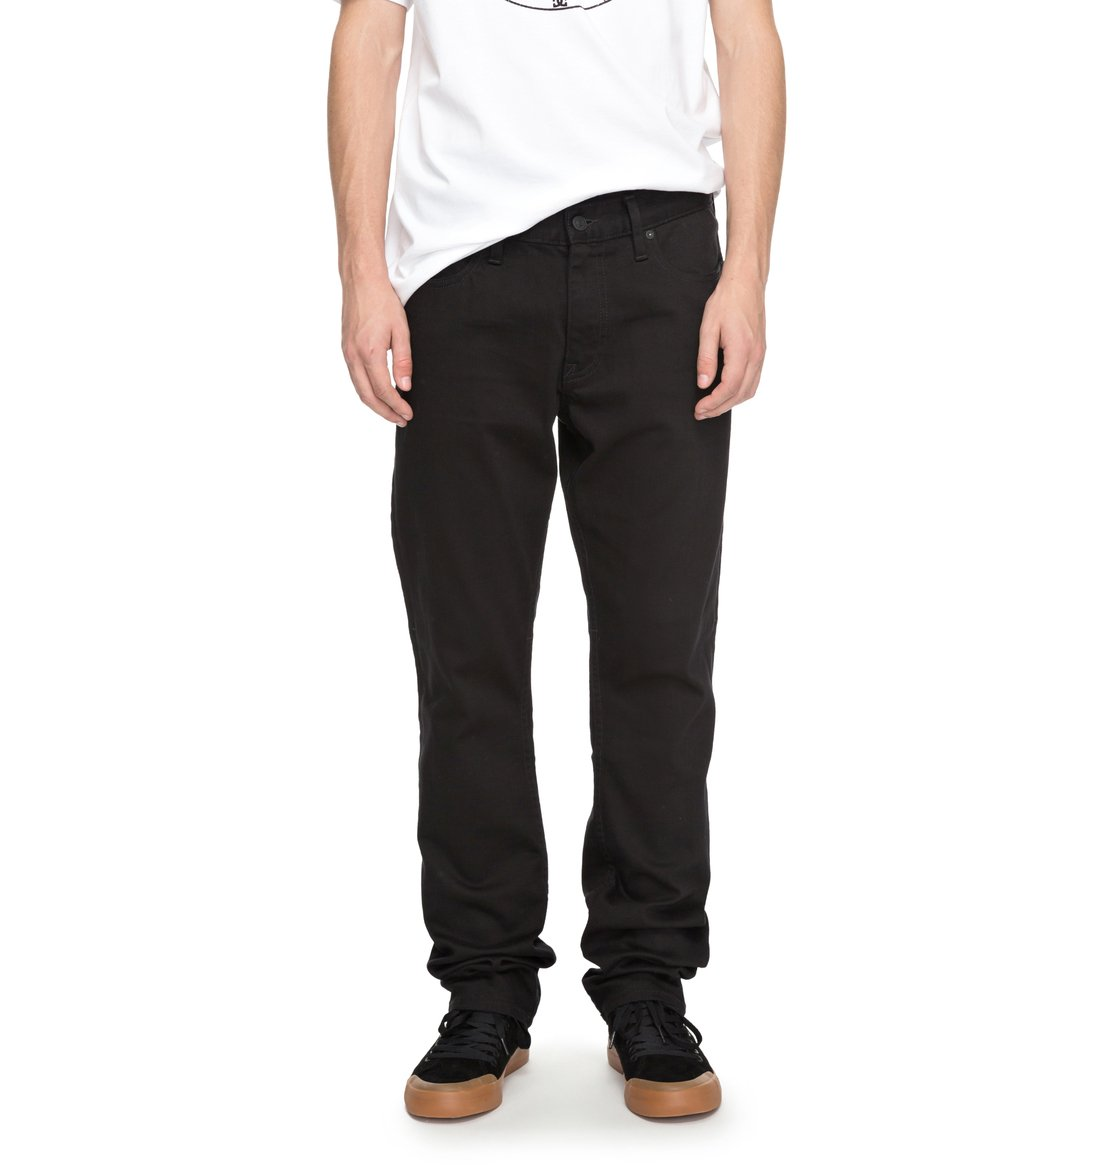 dc shoes Worker Black Rinse - Jeans Vestibilità Relaxed da Uomo - Black - DC Shoes